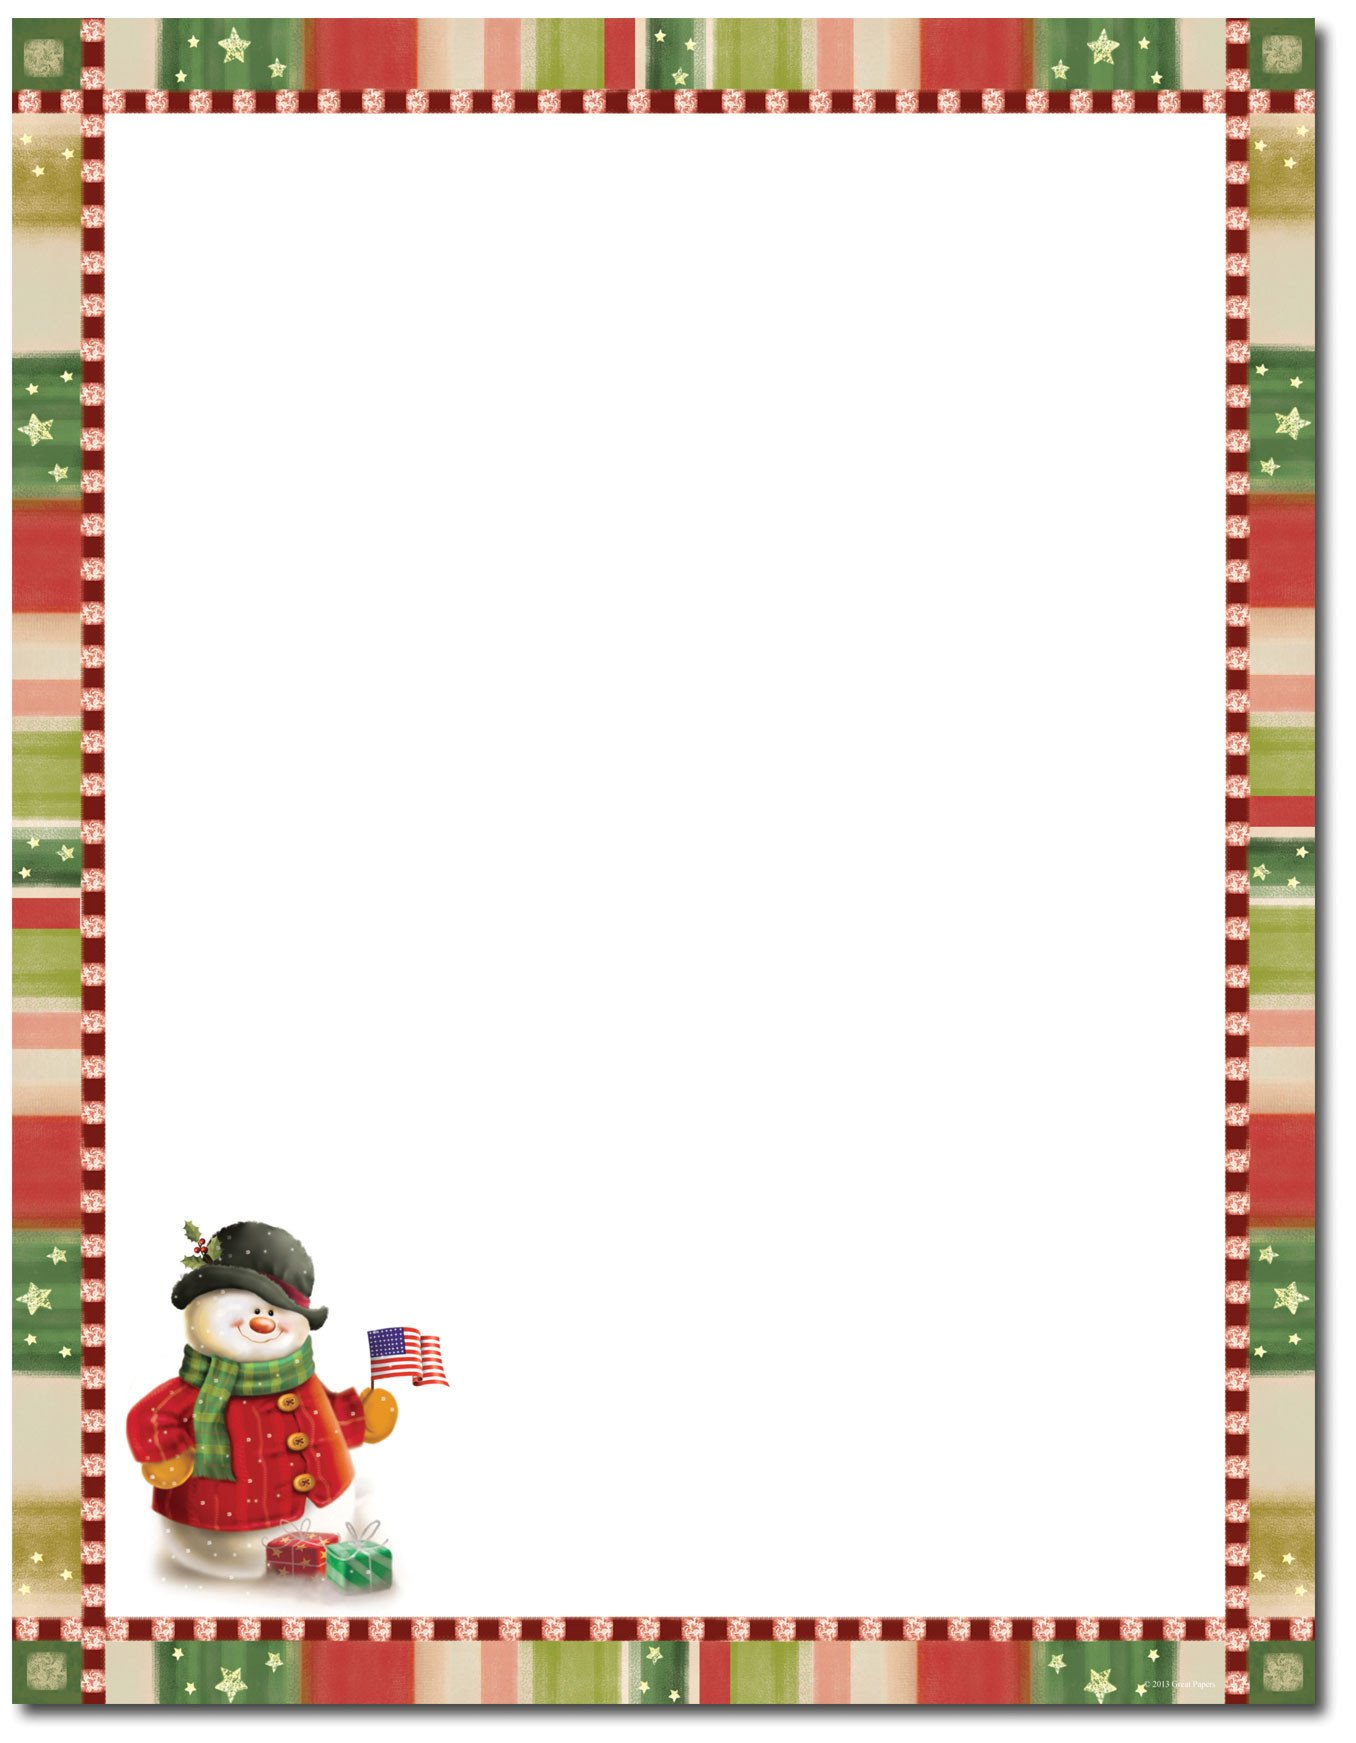 Christmas Stationery Templates Word Great Papers Patriotic Snowman Letterhead